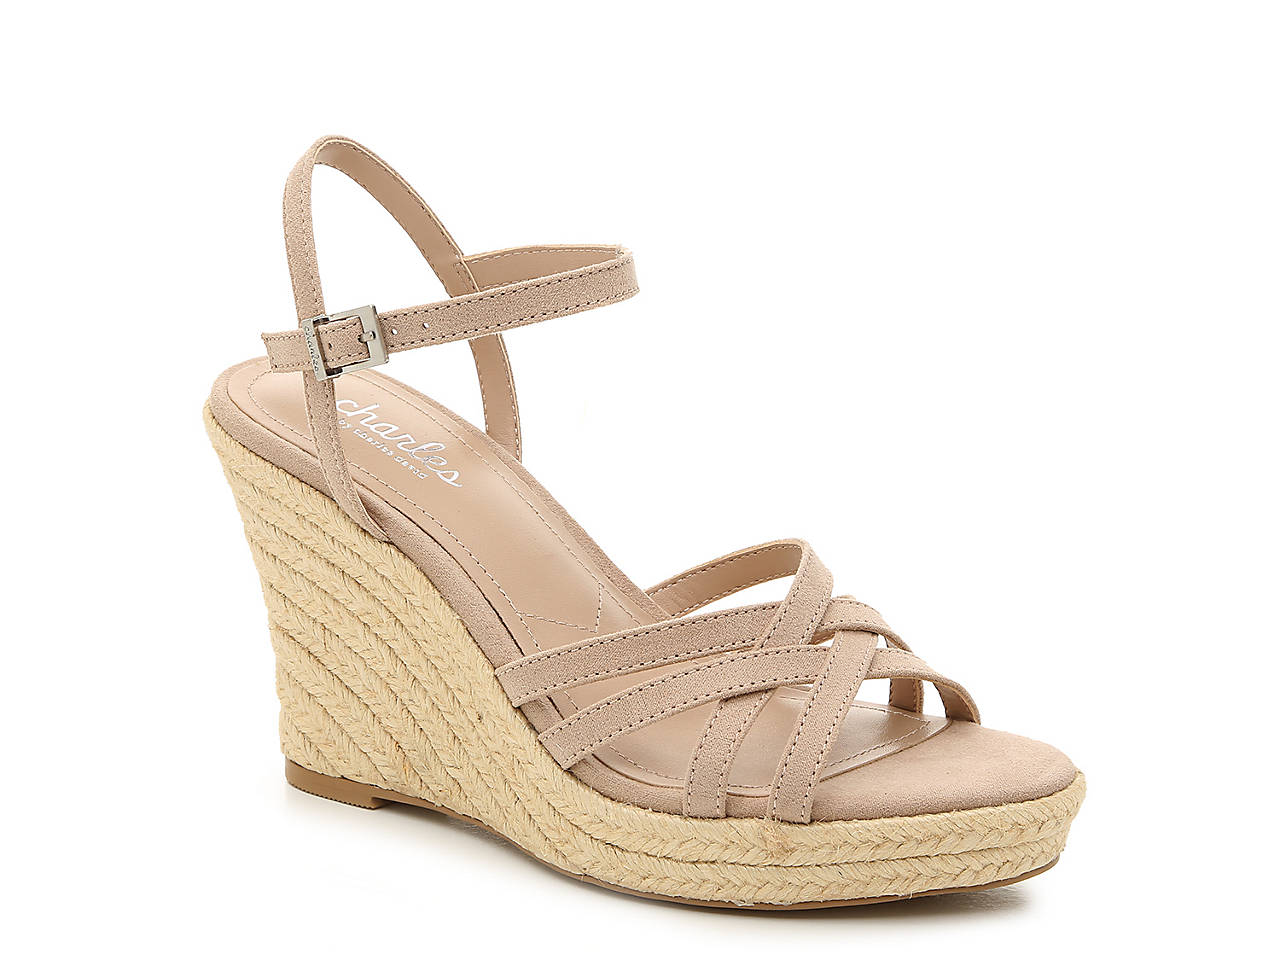 1ab7ee12bc59 Charles by Charles David Lorne Espadrille Wedge Sandal Women s Shoes ...